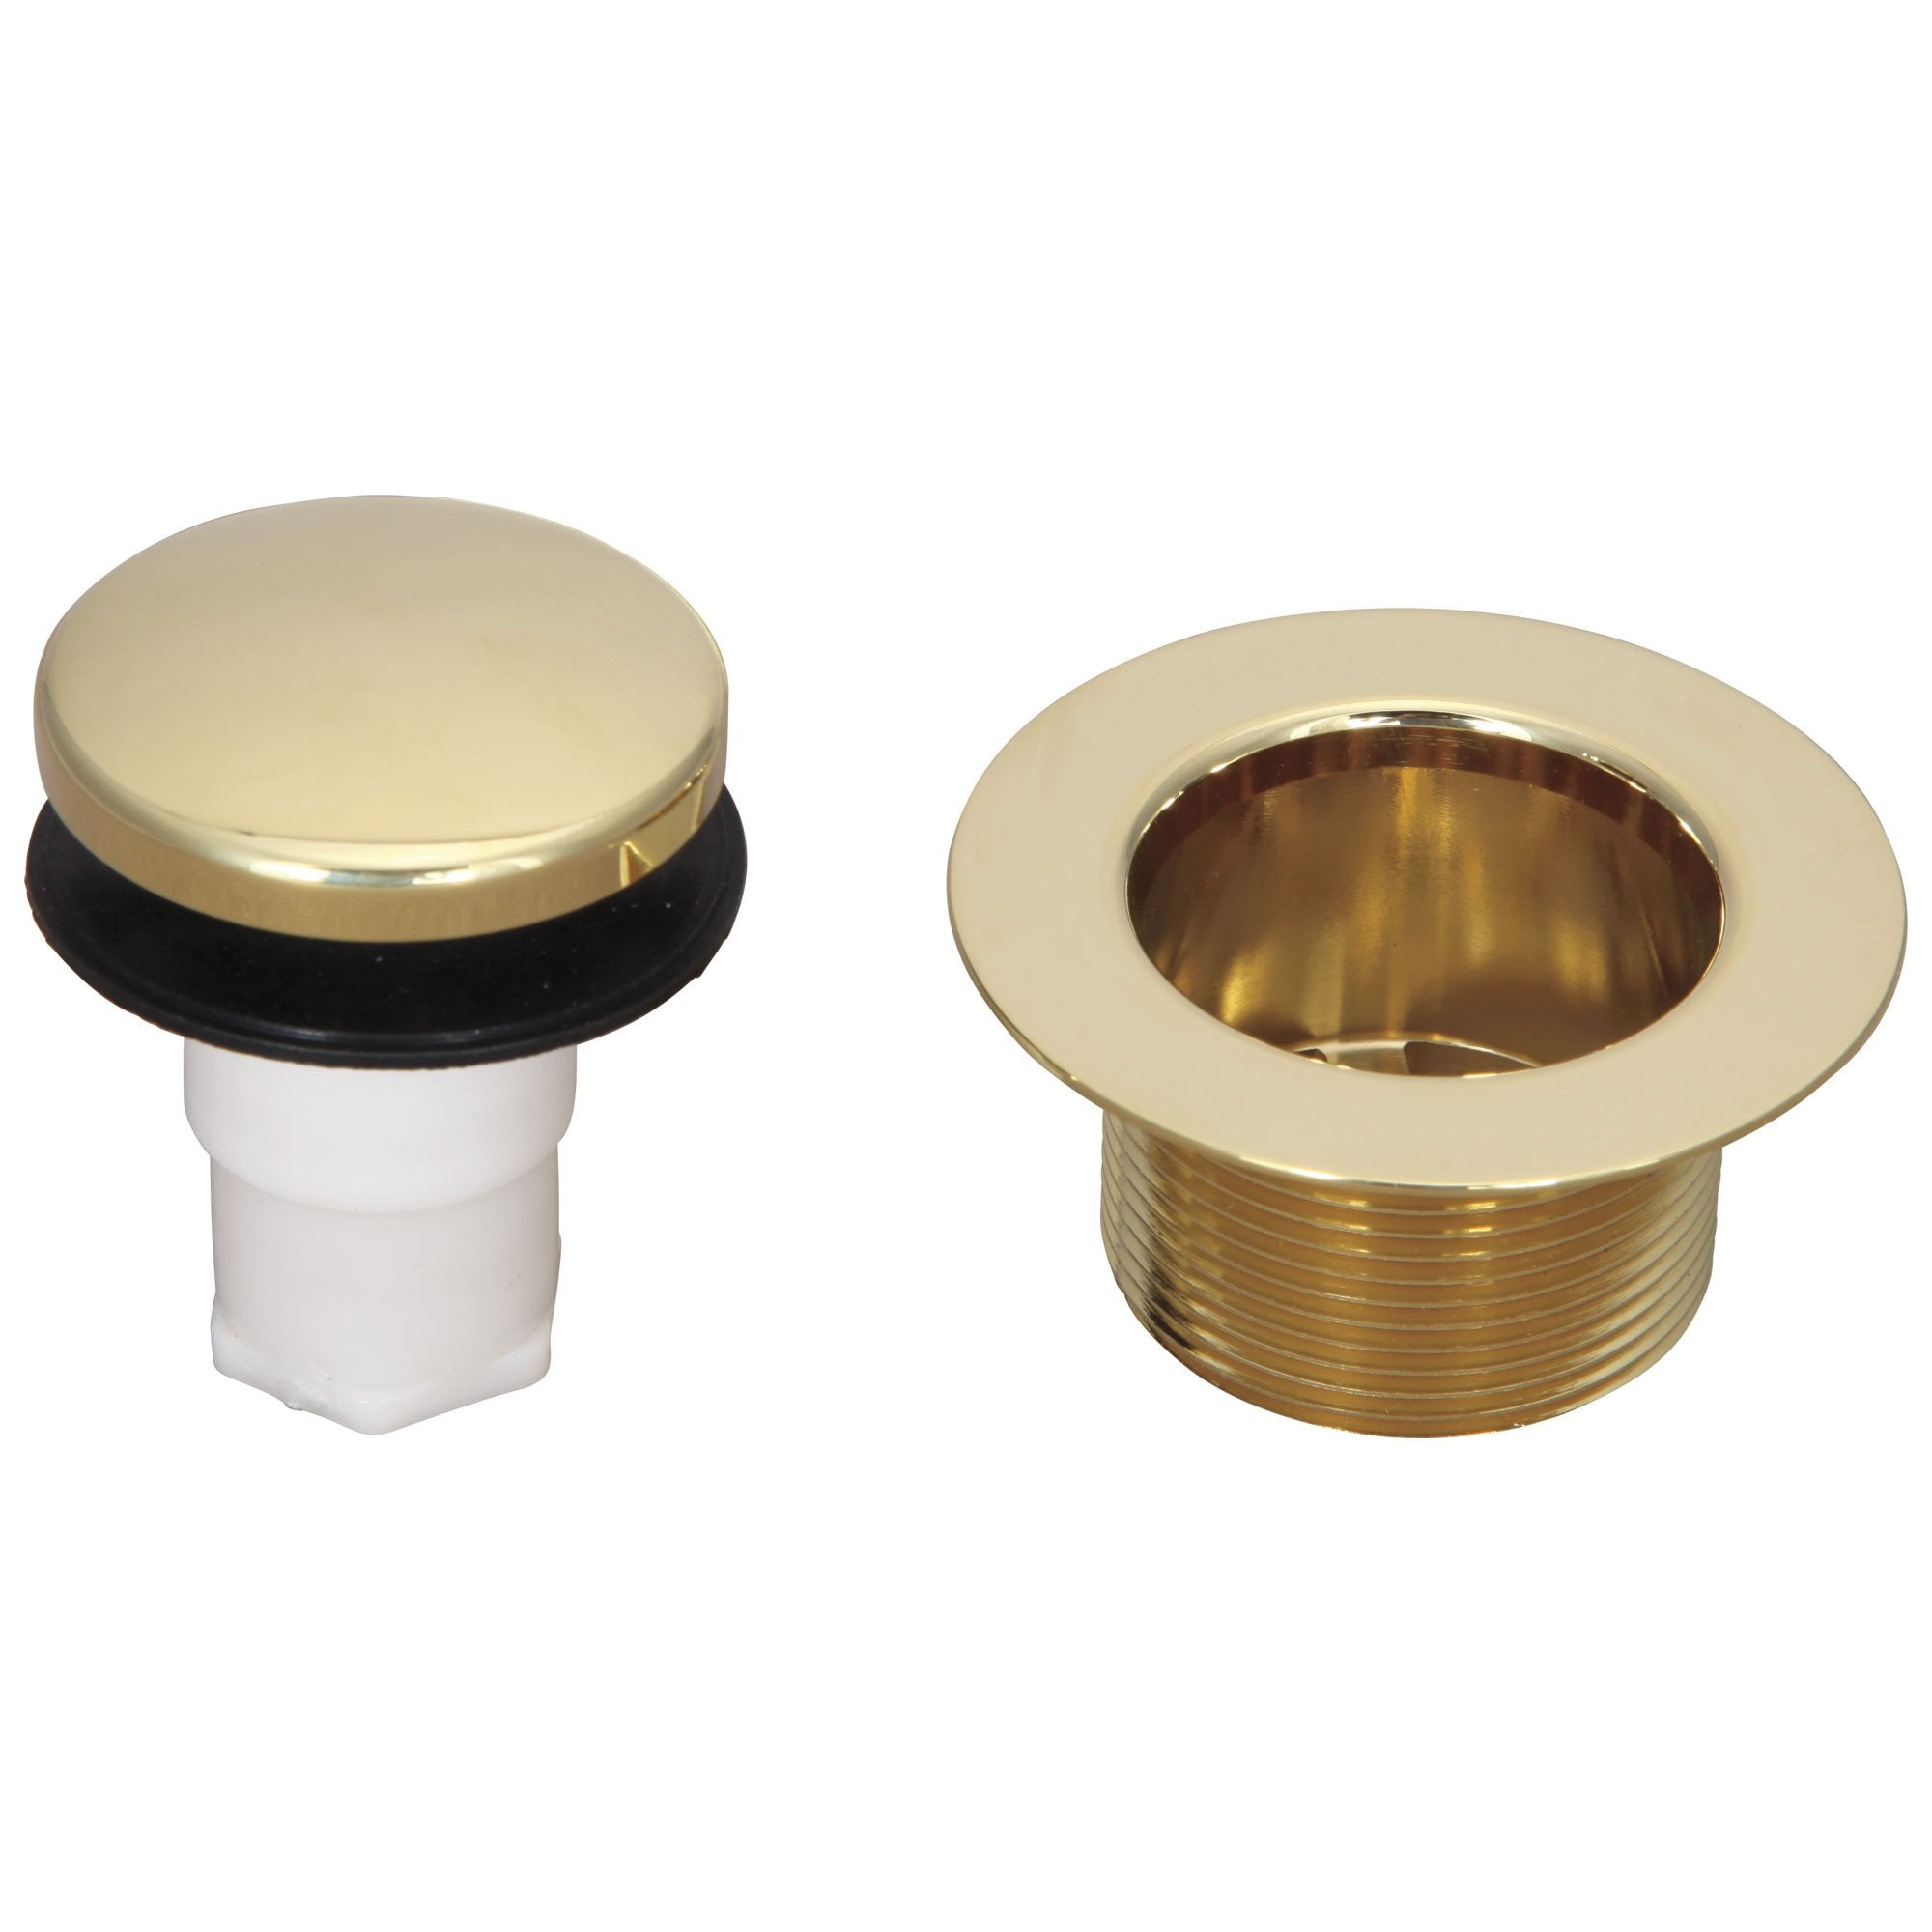 Delta Polished Brass Finish Touch Toe Operated Stopper and Waste Plug Tub Drain 208253